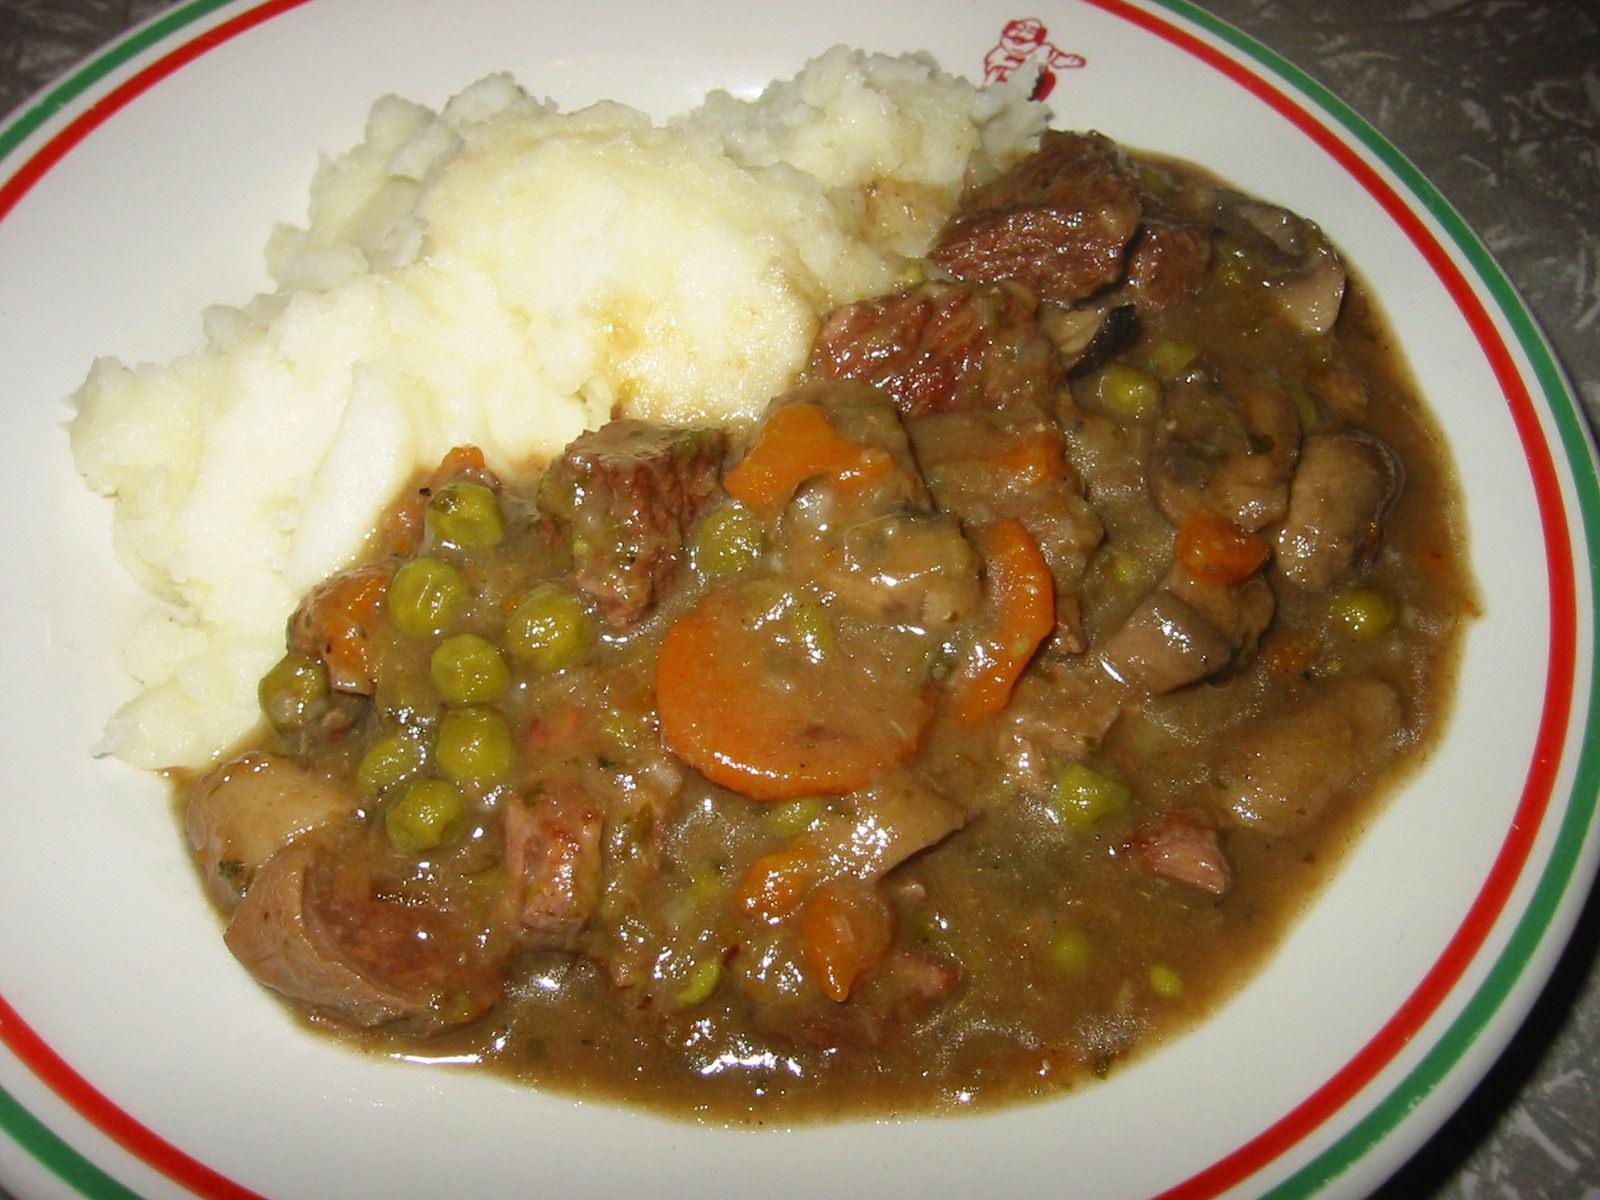 Beef and mushroom casserole with mashed potato